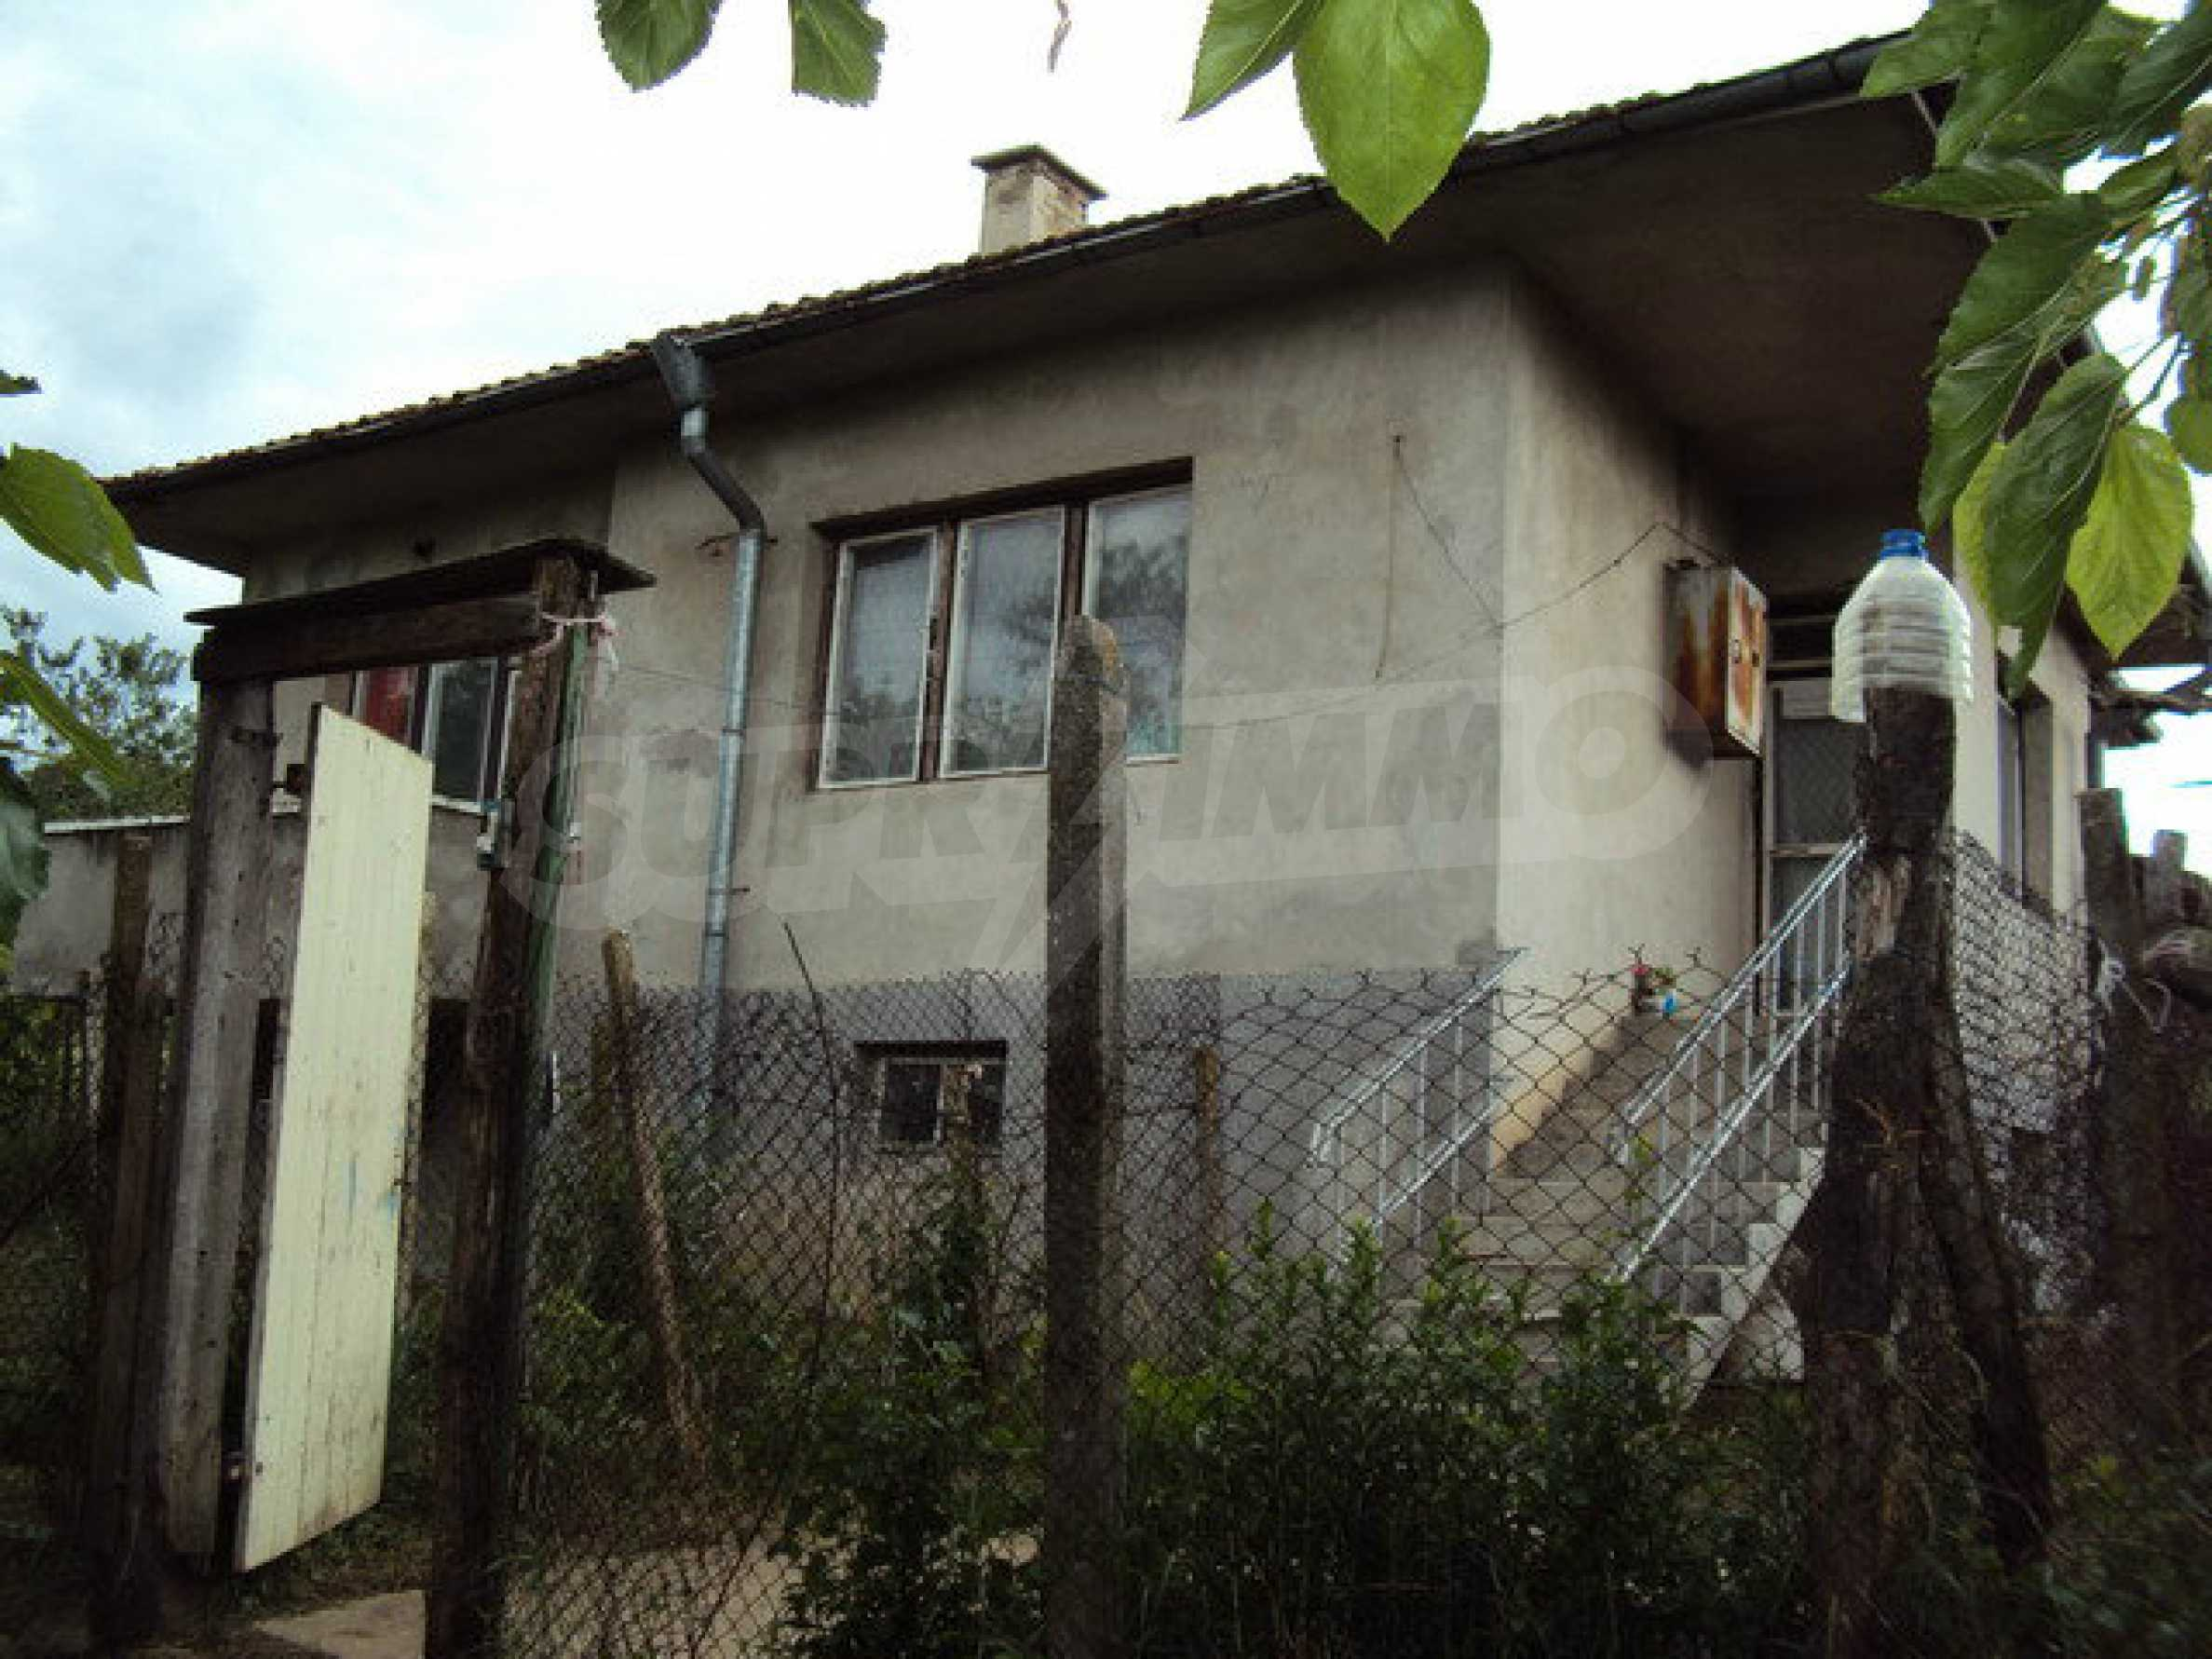 A house on two levels with garden  50 km. from the old capital of Veliko Tarnovo 22